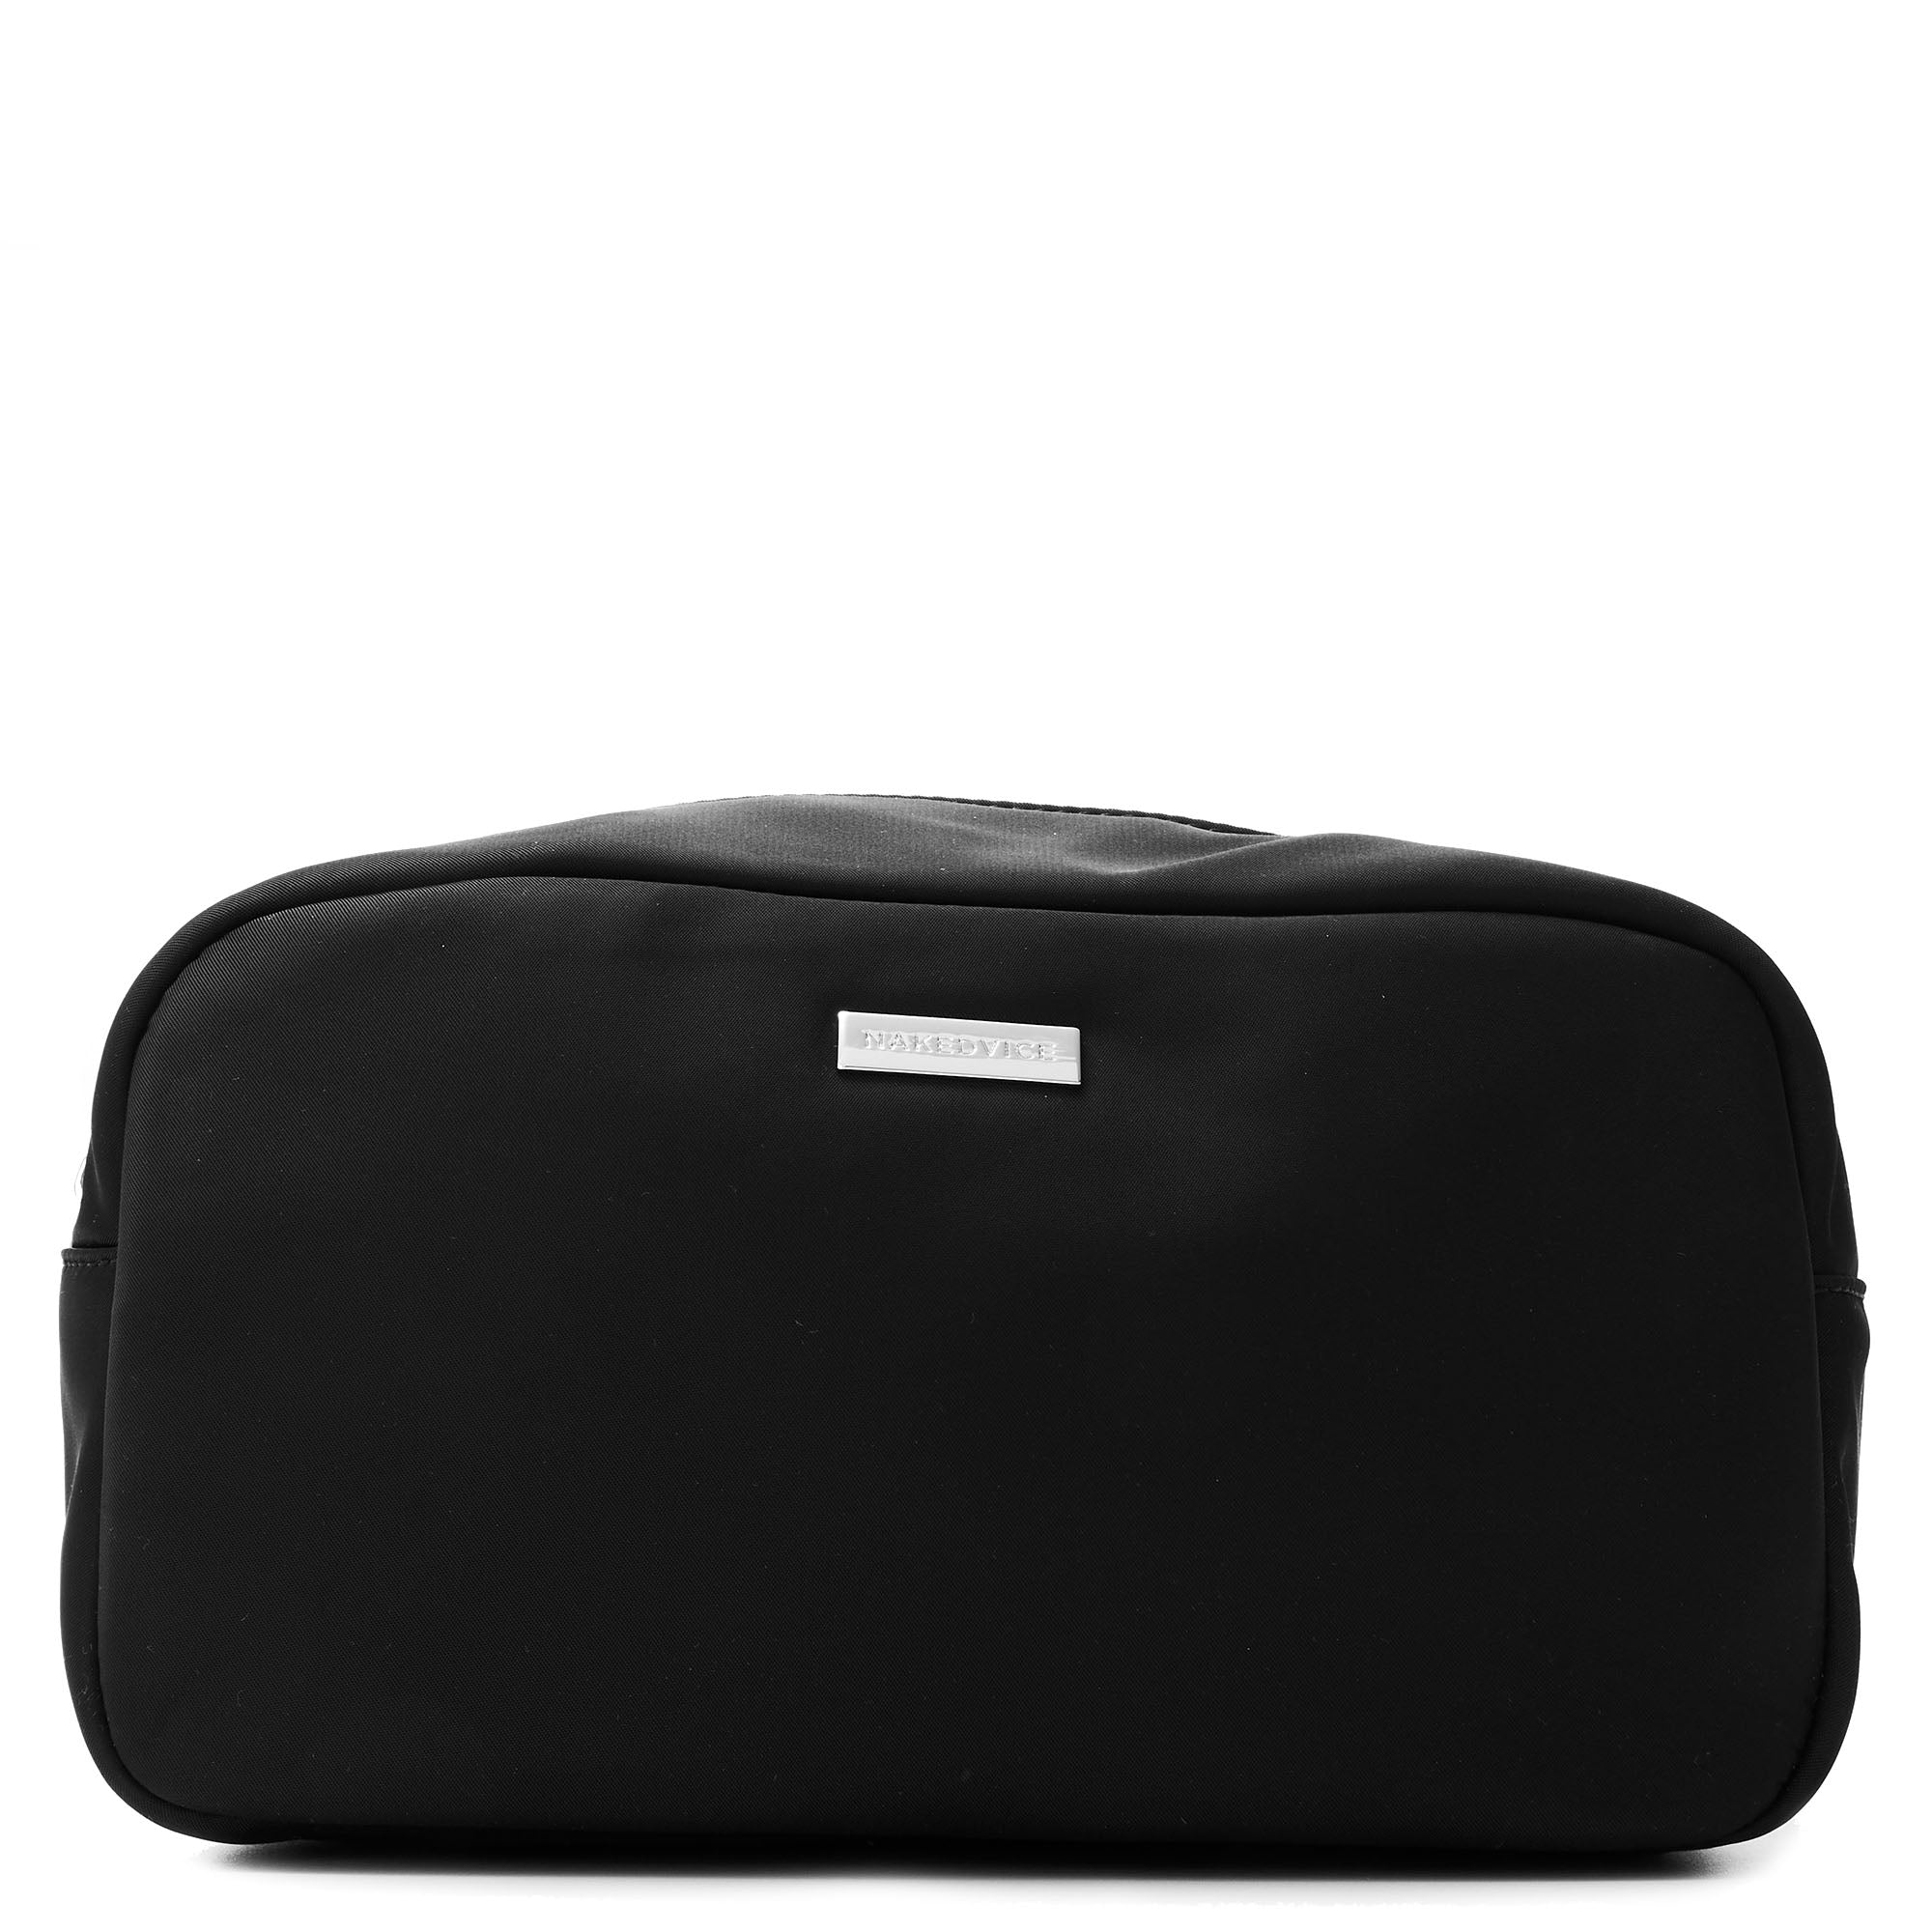 THE ADDISON MAKE UP BAG